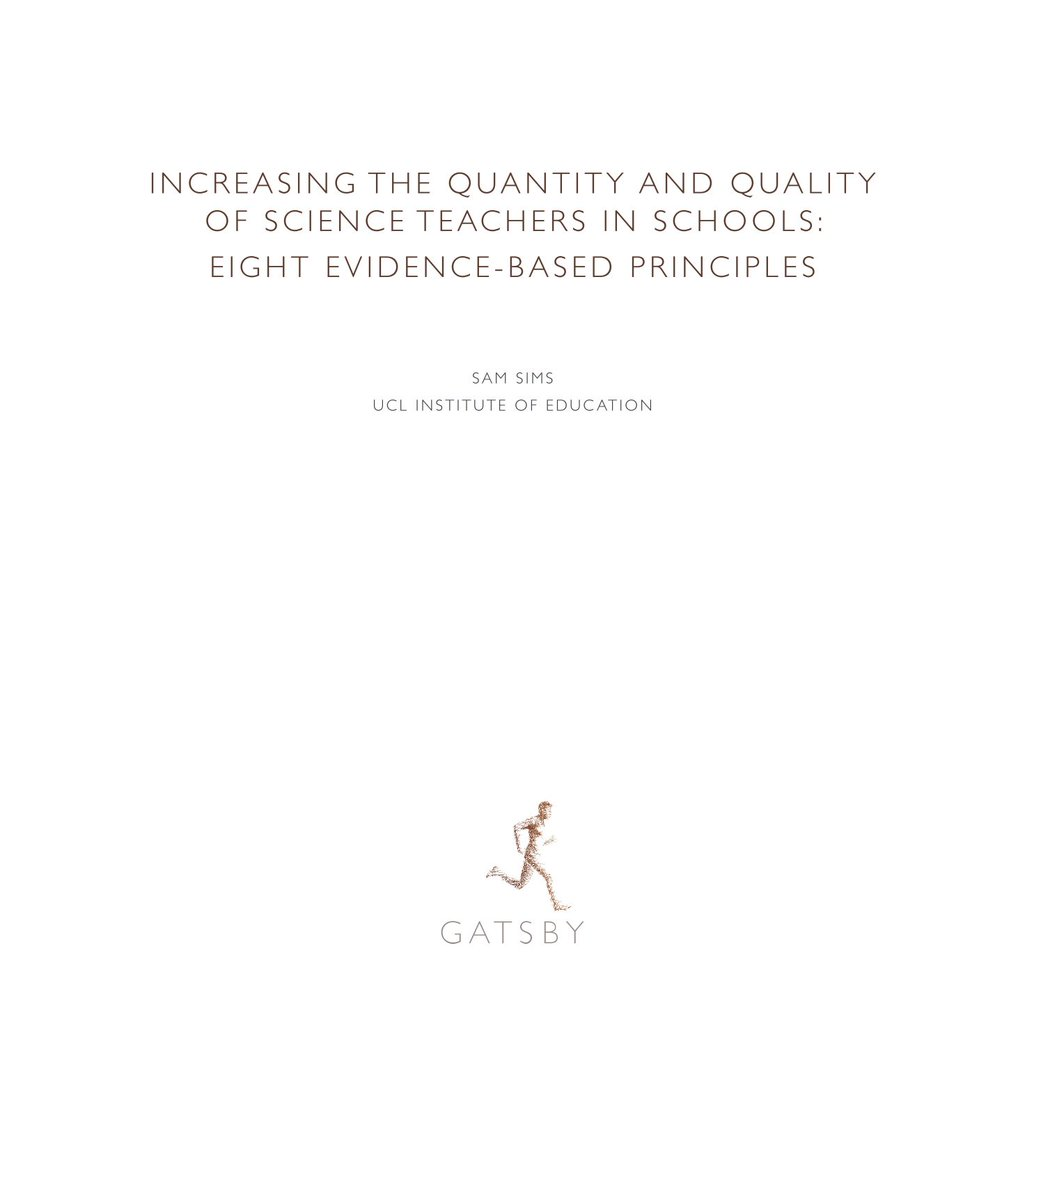 The shortage of science teachers in England is large, and getting worse.  I was approached by @GatsbyEd to review the evidence on what schools can do to increase their teaching capacity - both quantity & quality.  Thread on what we discovered 👇